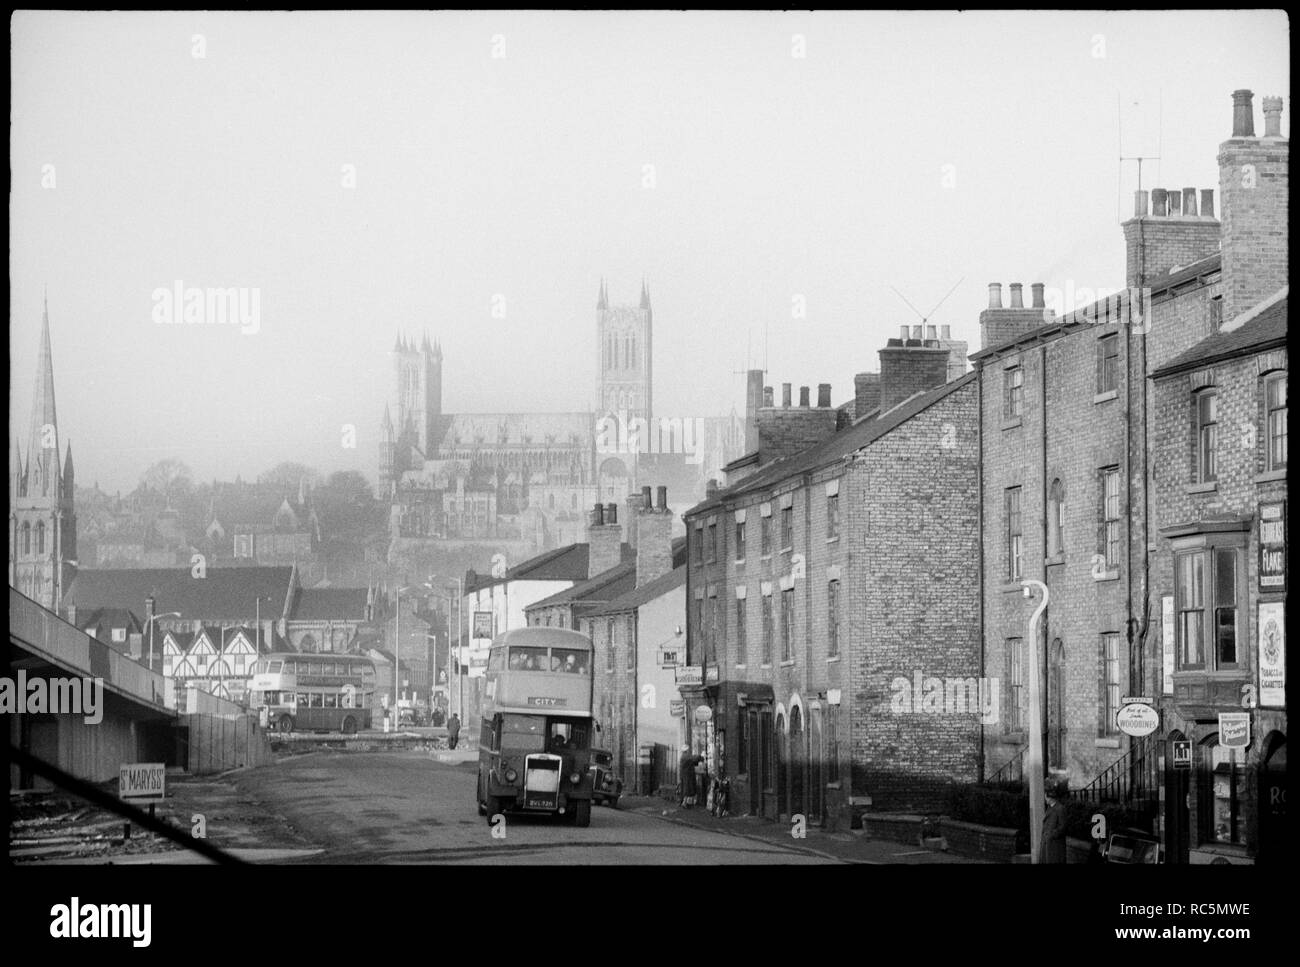 St Mary's Cathedral Church, Minster Yard, Lincoln, Lincolnshire, c1955-c1980. General view of Lincoln looking along Melville Street towards the Green Dragon Public House, with St Swithin's Church in the midground and St Mary's Cathedral Church in the background. The image shows a general view of Lincoln north of the River Witham, and shows three listed buildings amongst the rooftops. On the left side of the image, past the entrance to a road bridge is the Green Dragon public house, a timber-framed building with arch braces and a jettied top floor with four gables, three of which can be seen. P - Stock Image